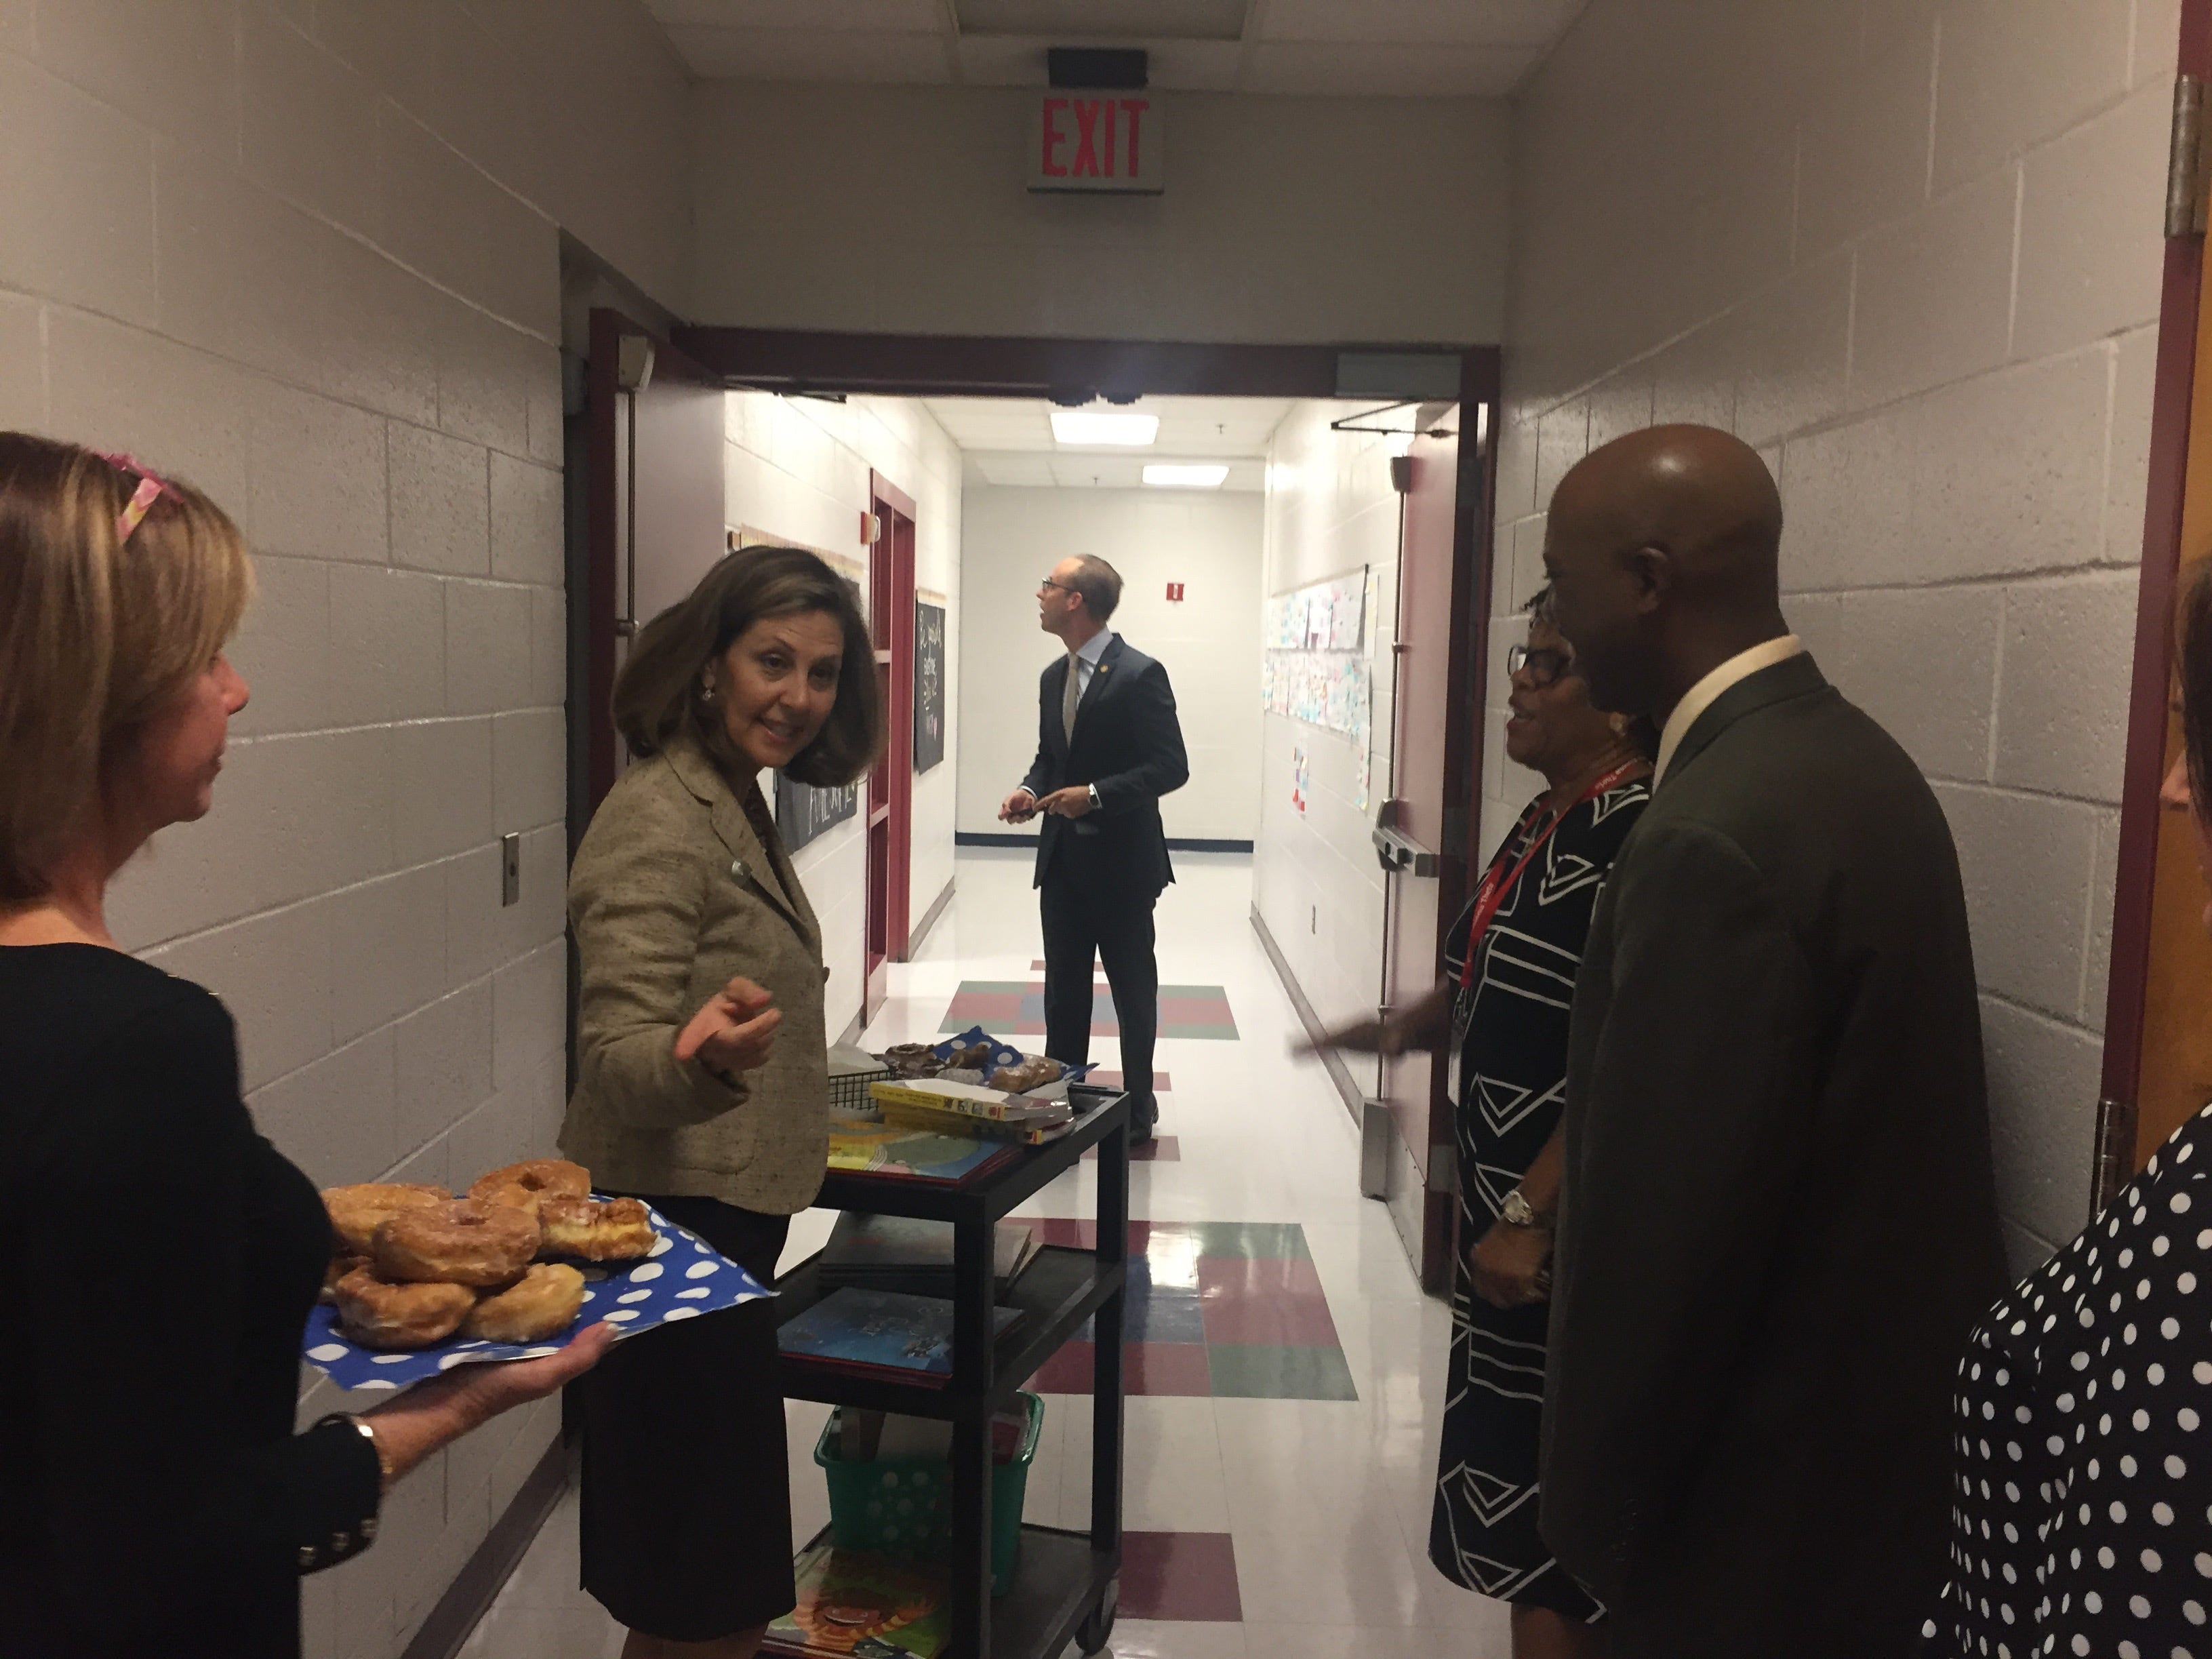 Virginia First Lady wheels a cart carrying books, school supplies and donuts down the hallway at Accawmacke Elementary School in Daugherty, Virginia on Monday, Sept. 20, 2018. Northam visited the school as part of a statewide back-to-school tour to thank teachers and discuss the importance of school readiness.